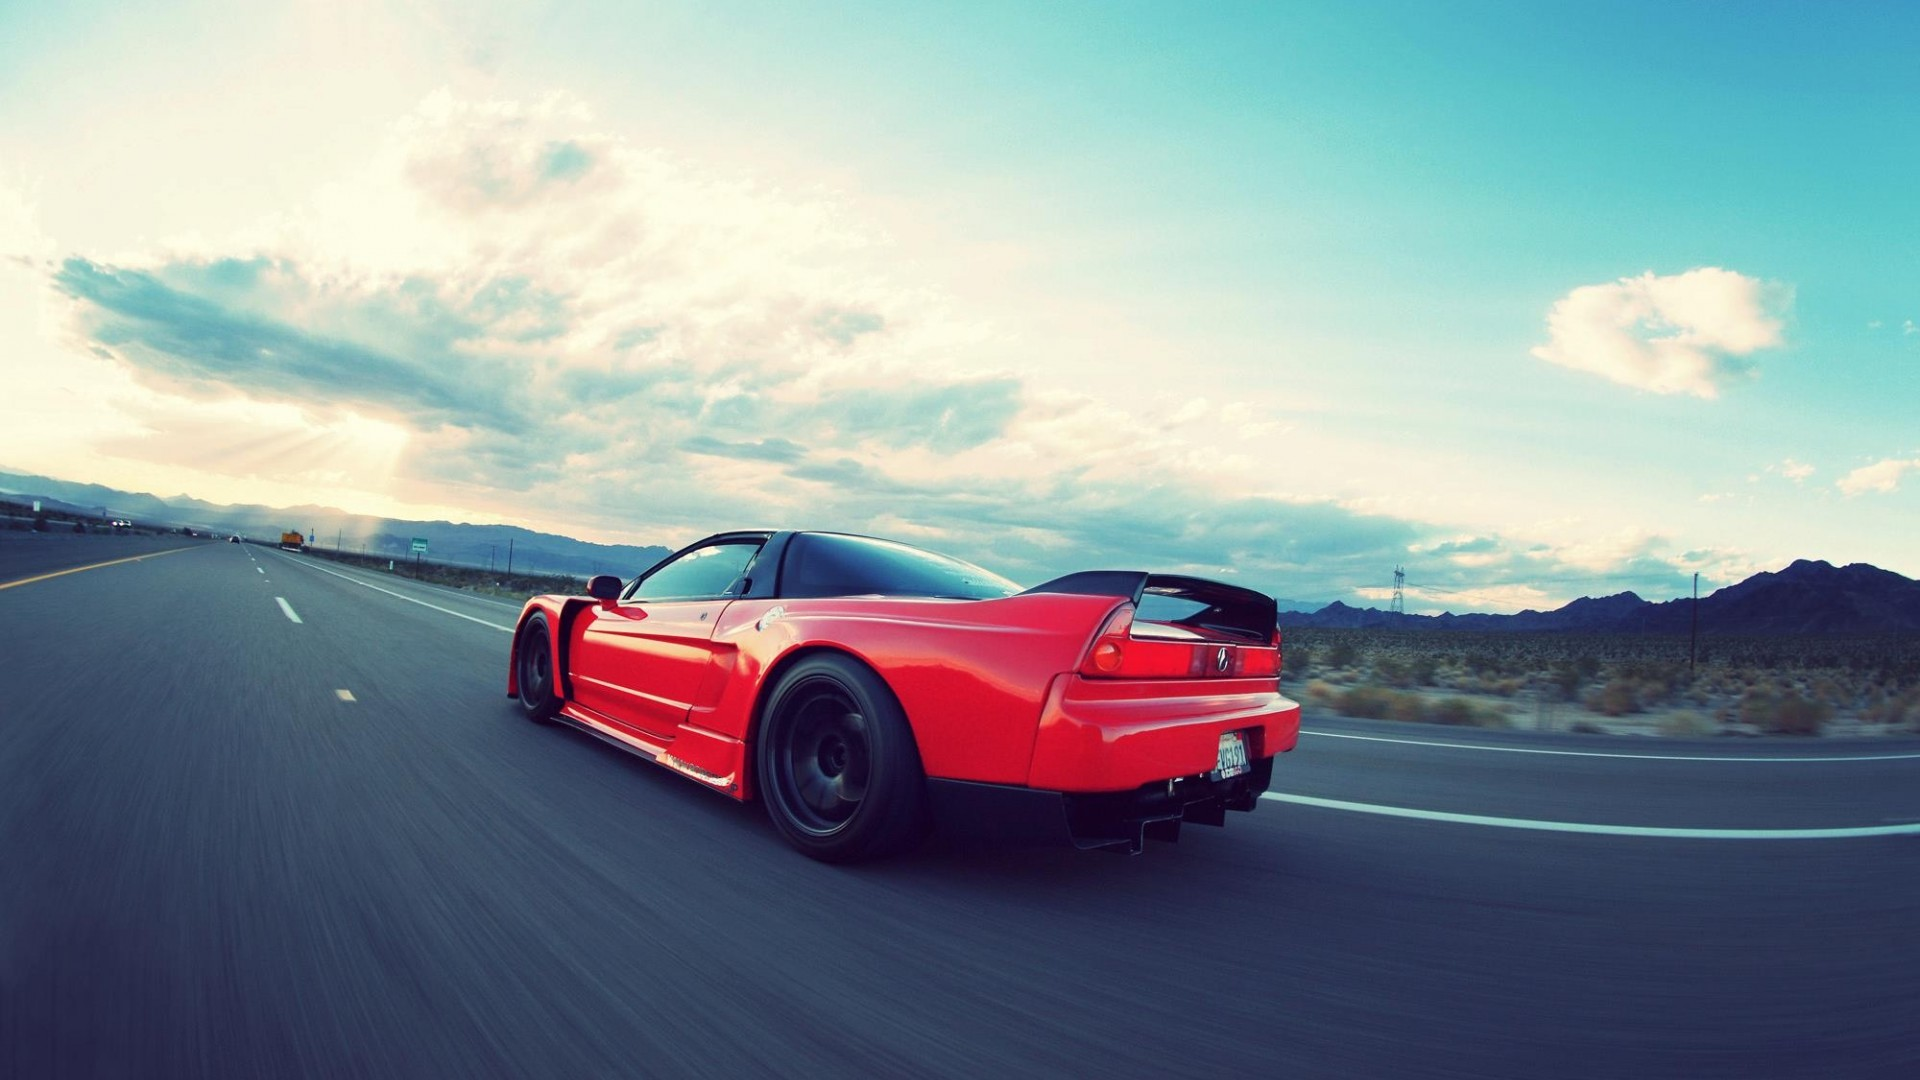 Honda nsx wallpaper hd media file pixelstalk view image larger and download voltagebd Gallery